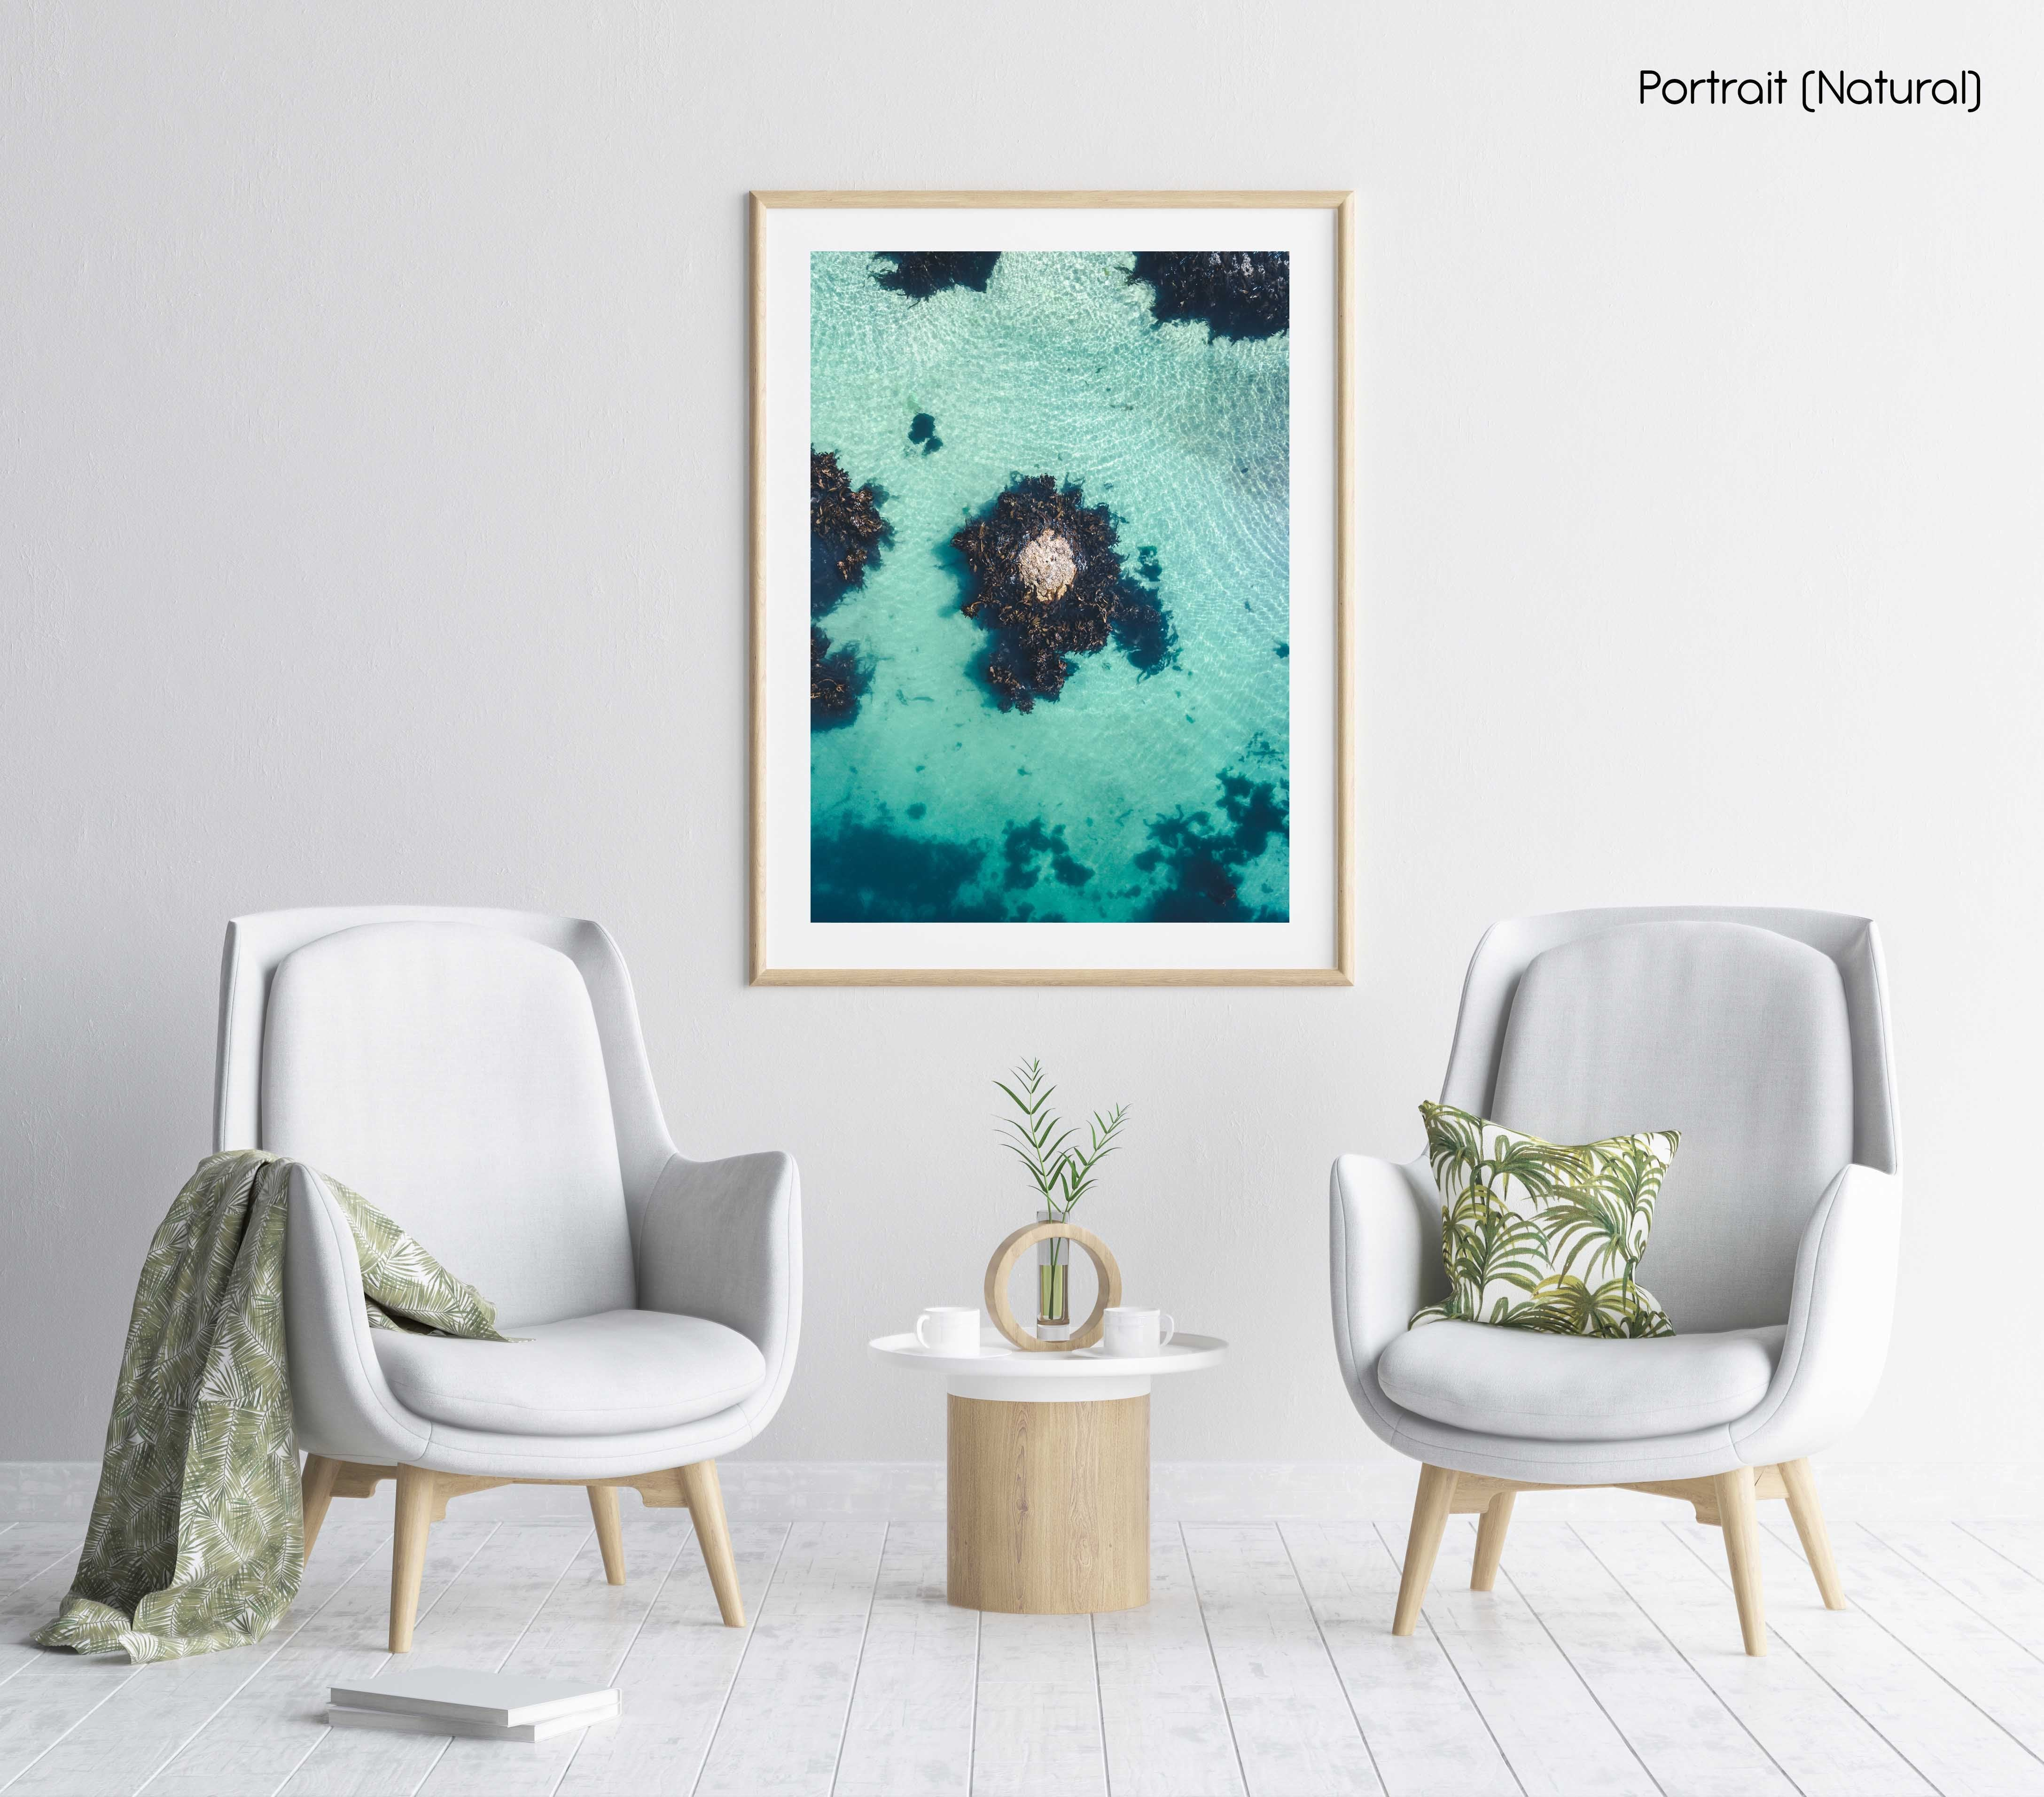 One rock with seaweed in middle of blue green water from above in a natural fine art frame